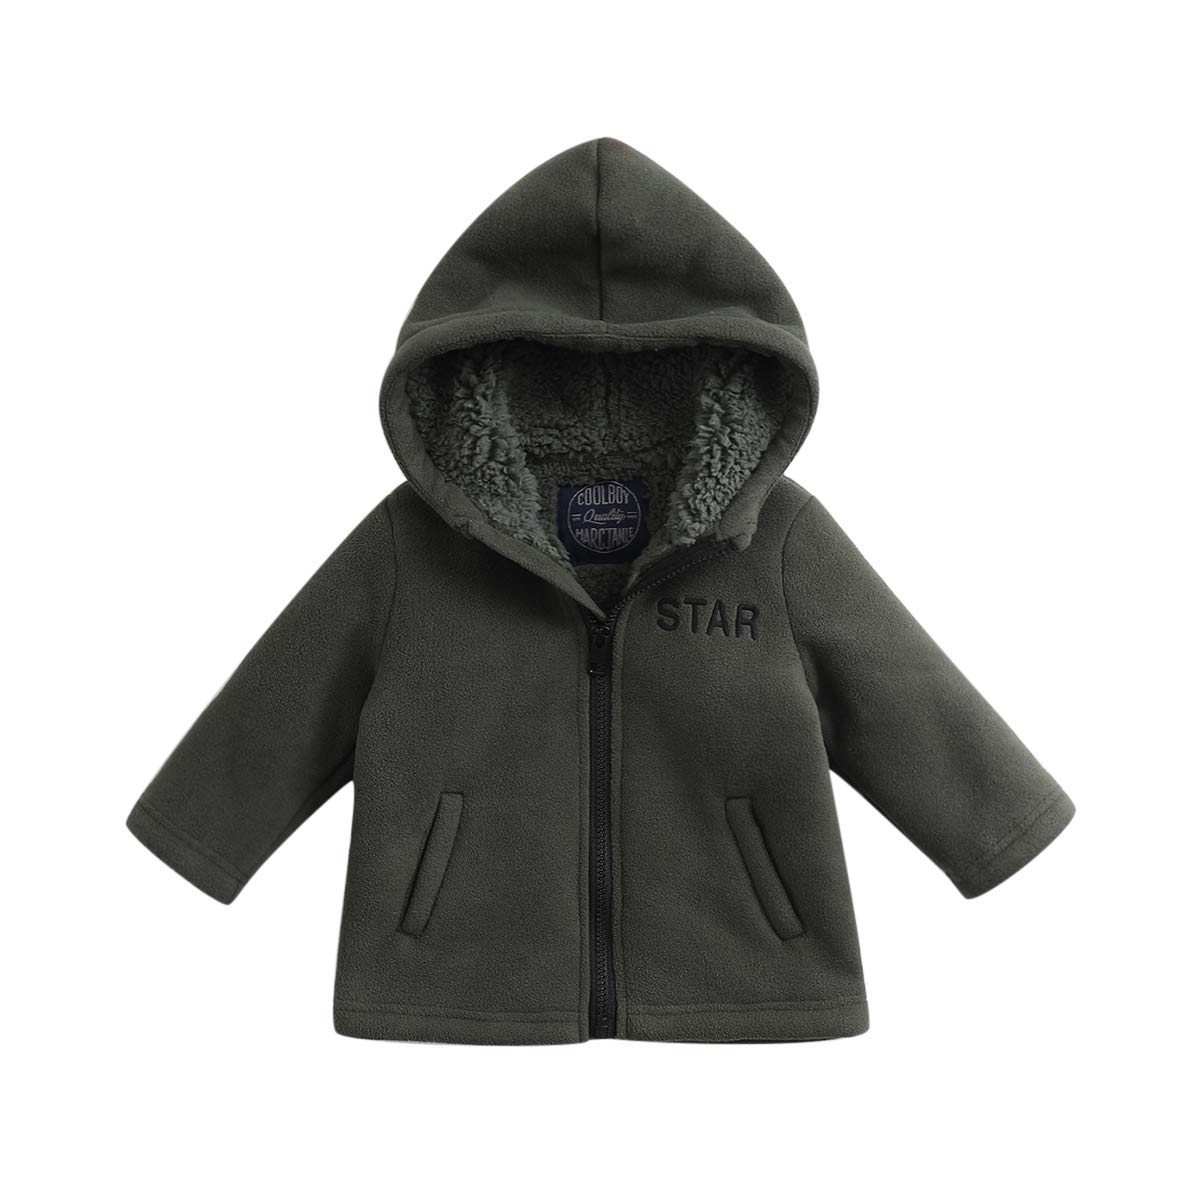 marc janie Little Boys' Winter Hoodie Jacket Thicken Fleece Artificial Lamb Fur Coat 70163